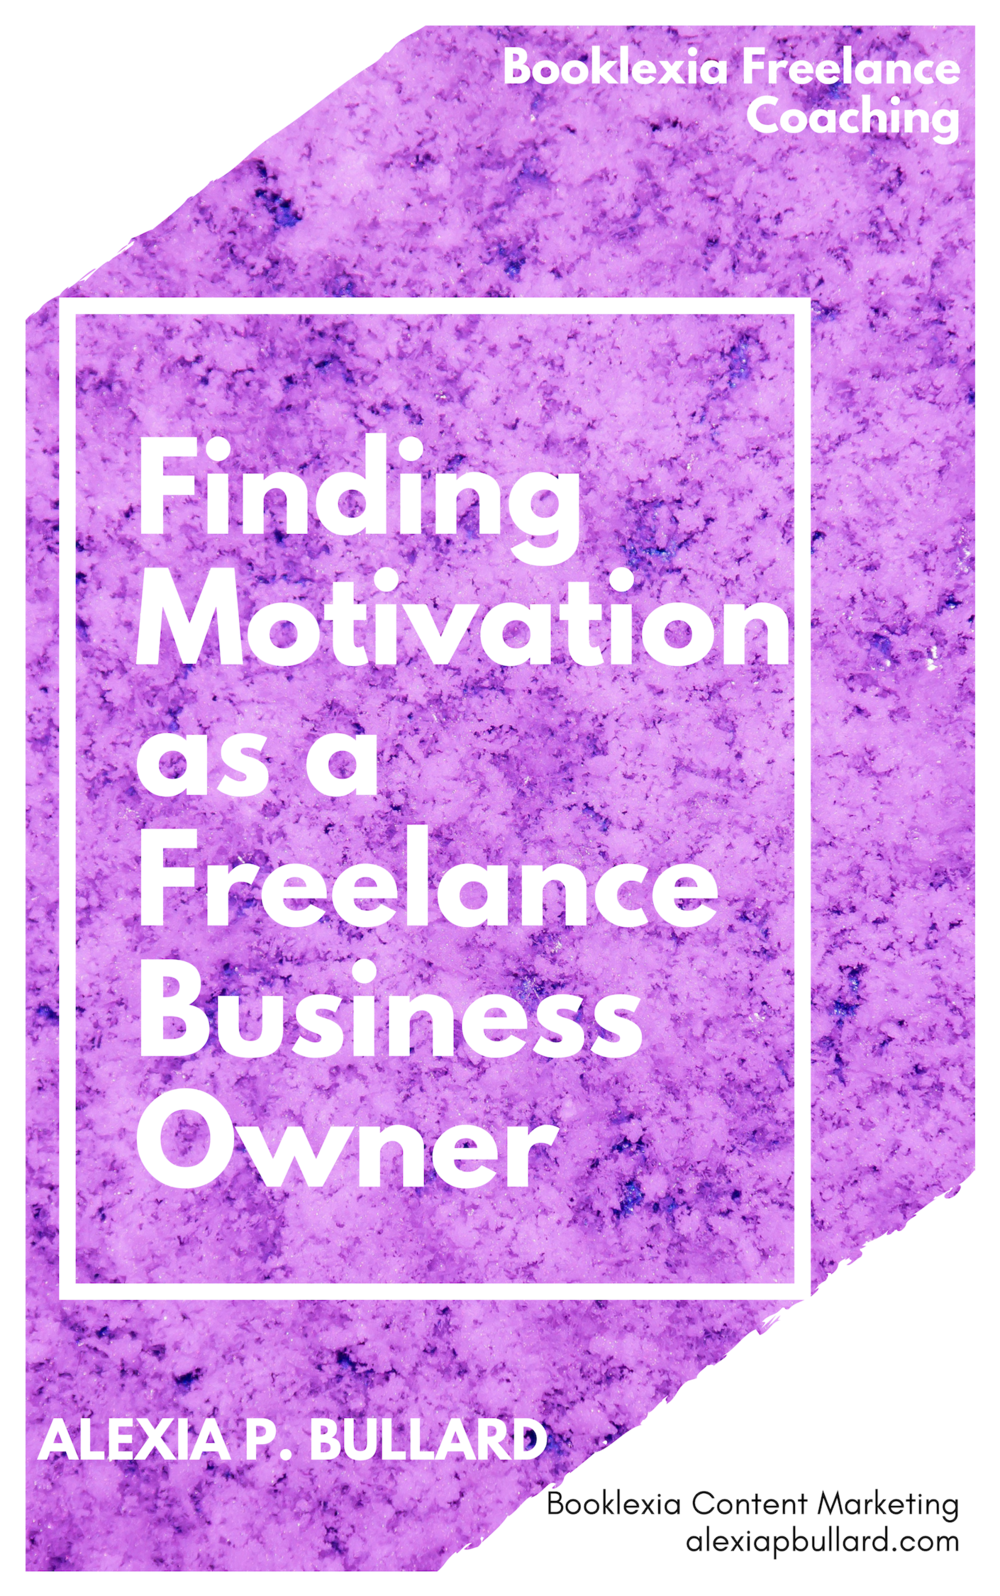 Finding motivation as a freelance business owner | Booklexia Content Marketing, cannabis content marketing, cannabis writer